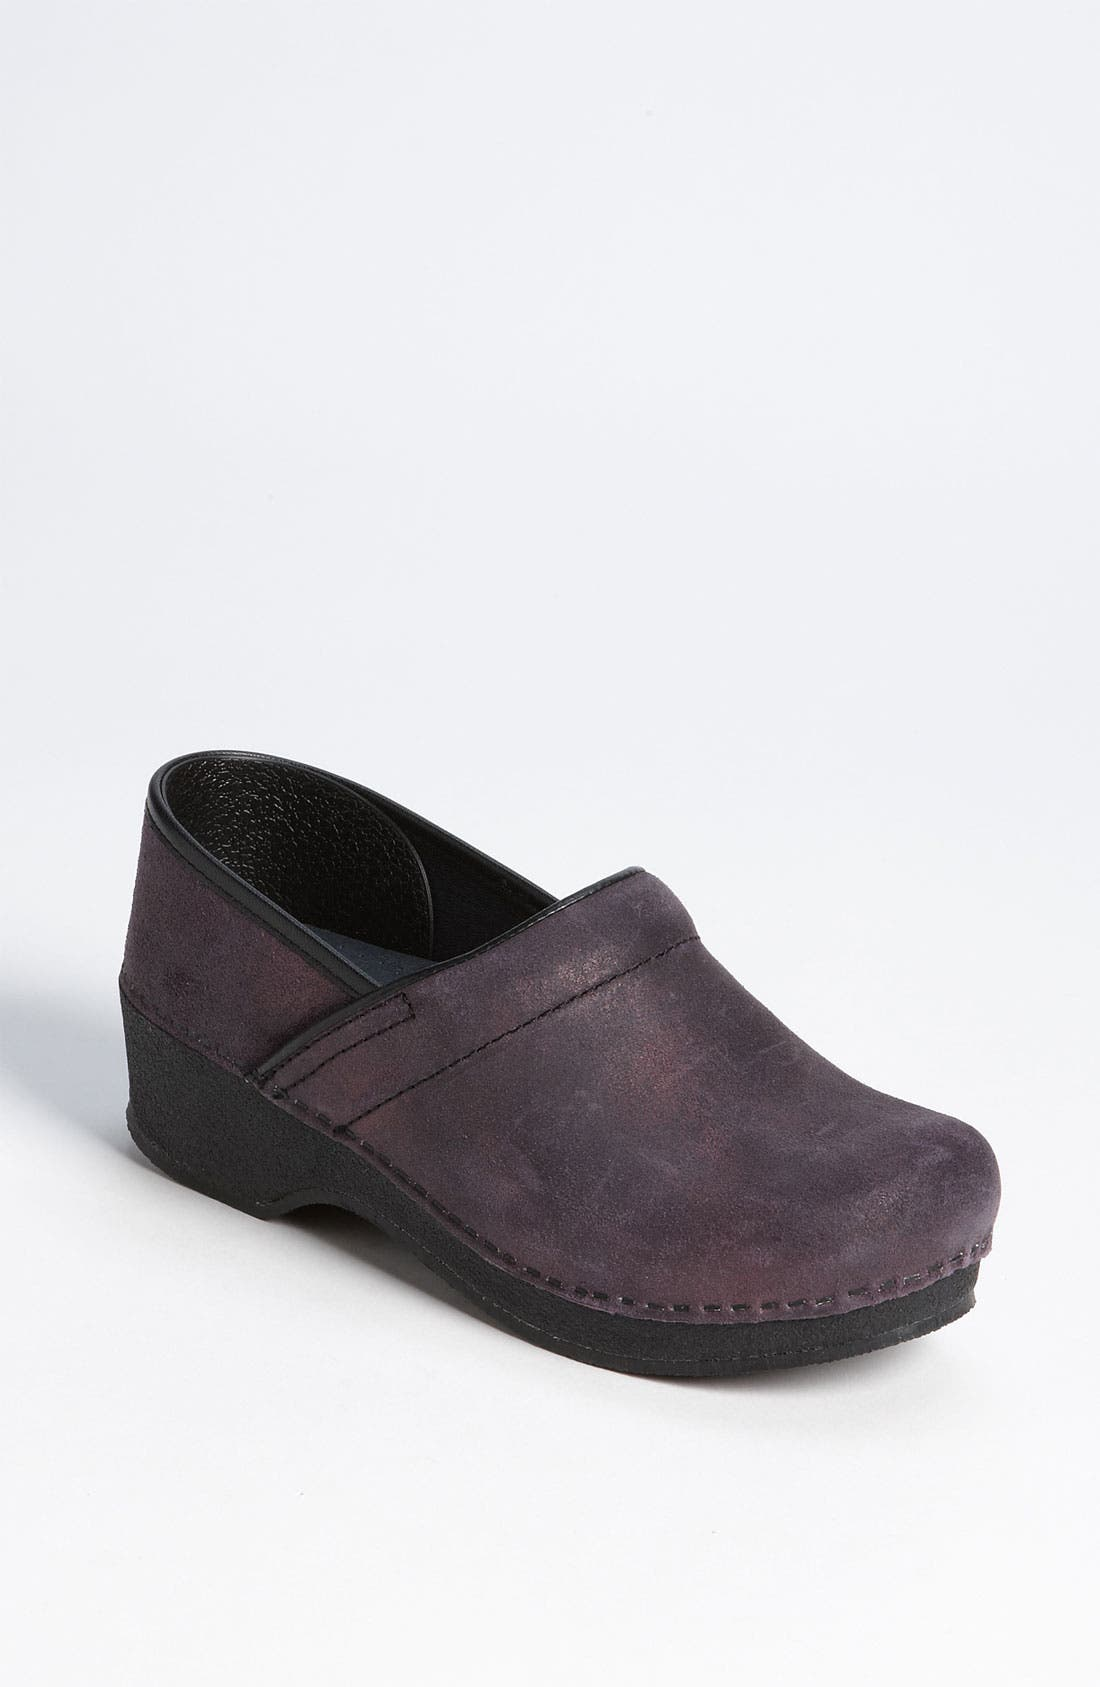 Alternate Image 1 Selected - Dansko 'Professional Crepe' Clog